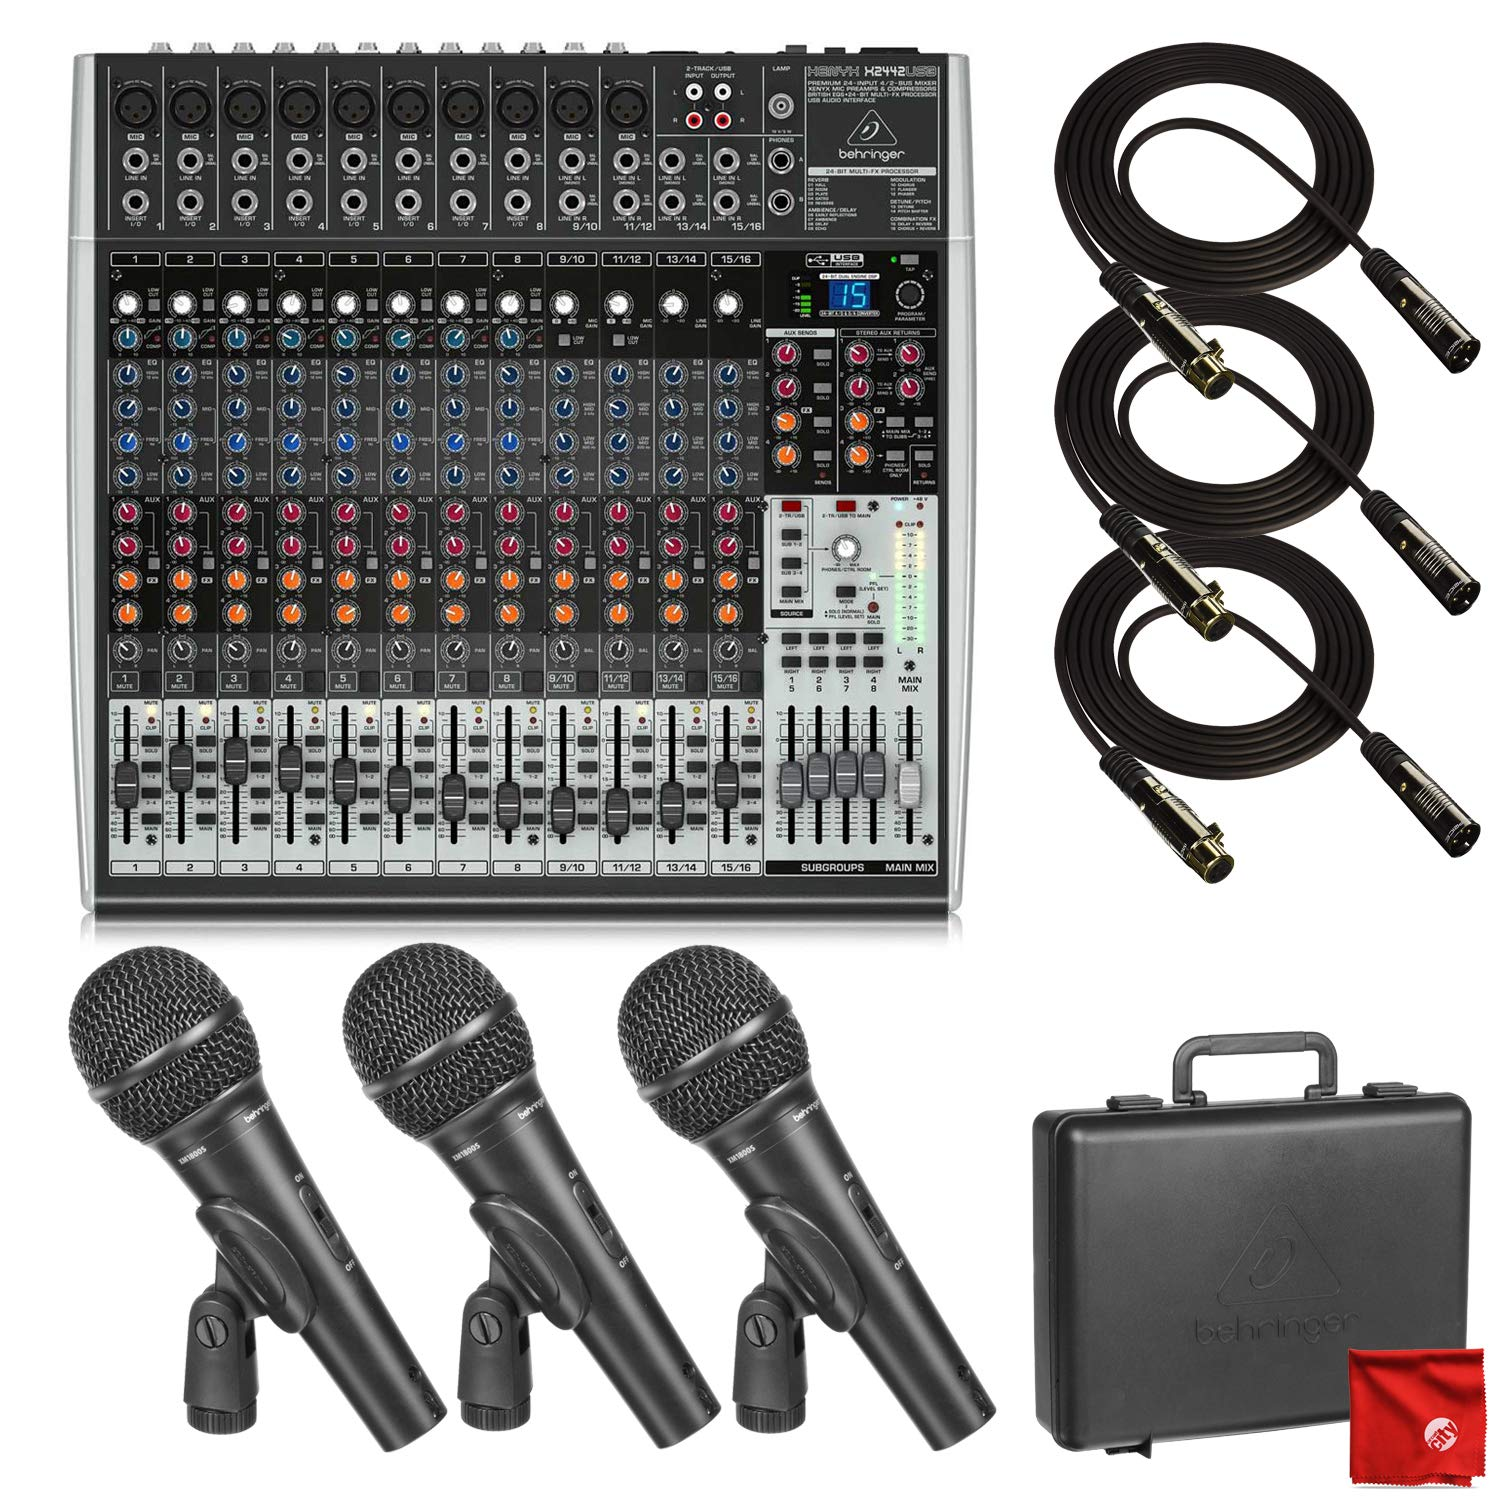 Behringer Xenyx X2442USB Premium 24-Input 4/2-Bus Mixer with USB/Audio Interface Bundle which includes 3 Pack of Behringer Dynamic Microphones and 3X Pro 10ft XLR Cables and Microfiber Cleaning Cloth